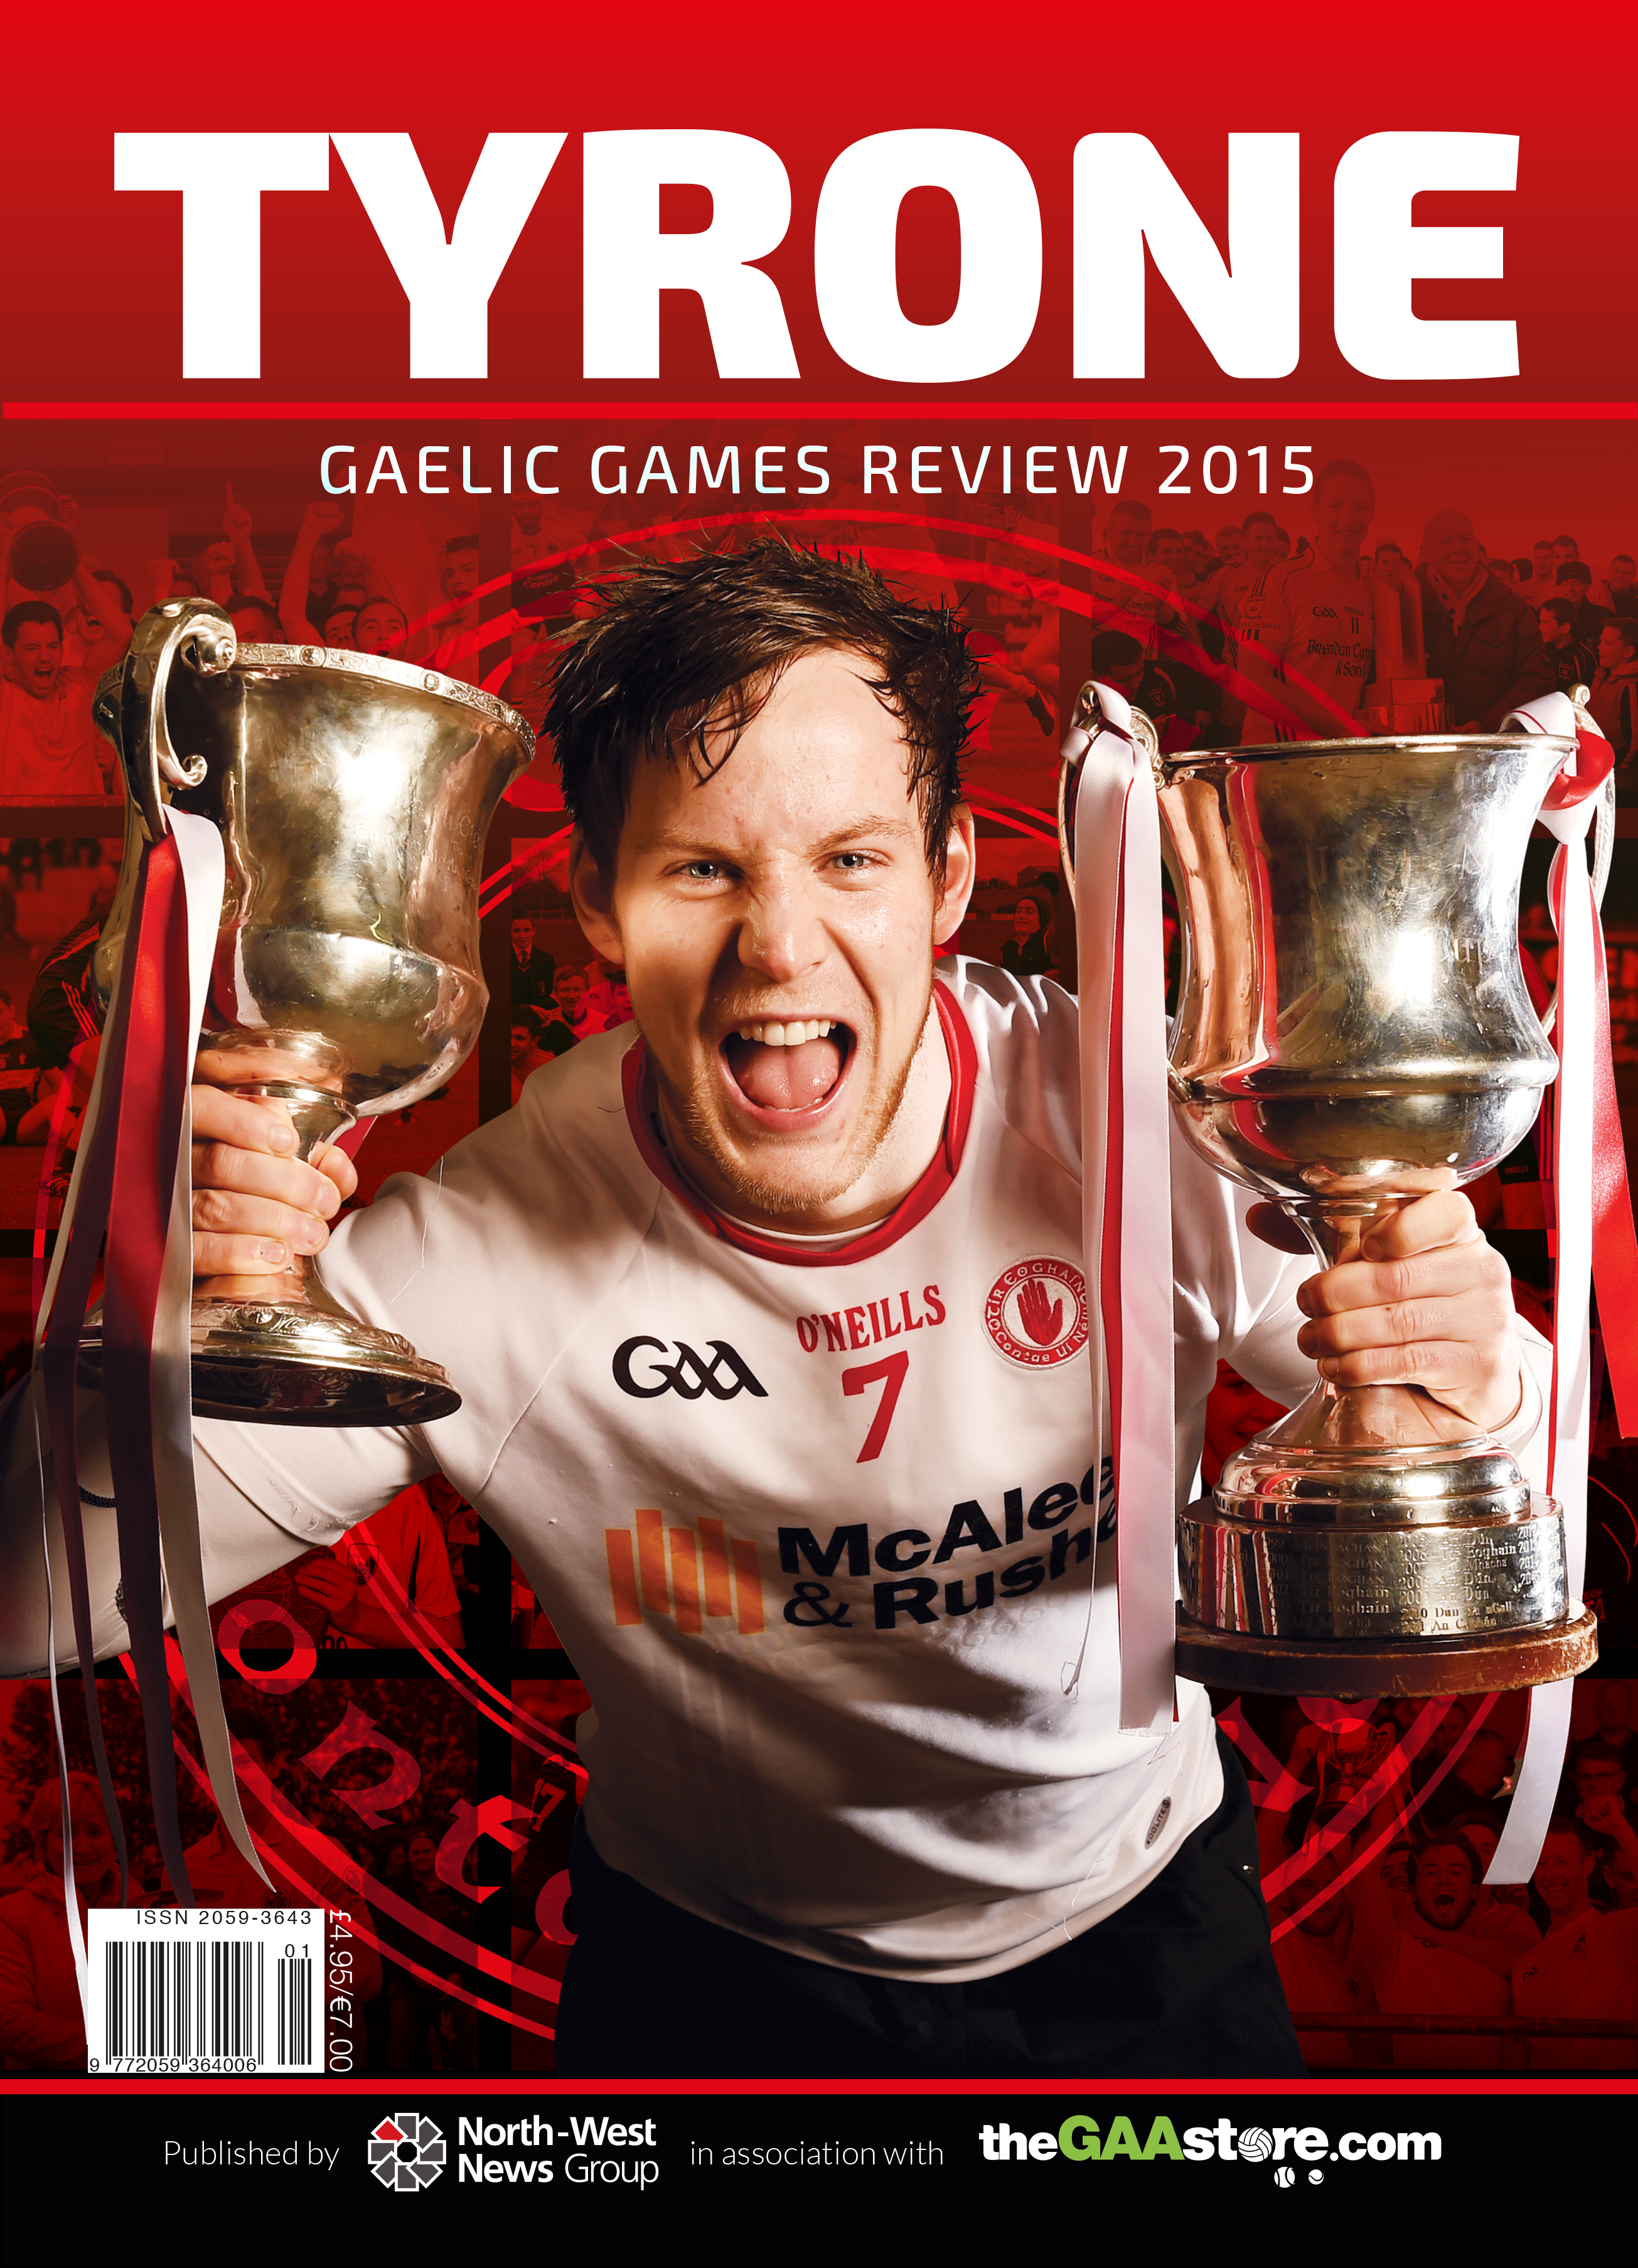 Tyrone Gaelic Games Review on sale now!